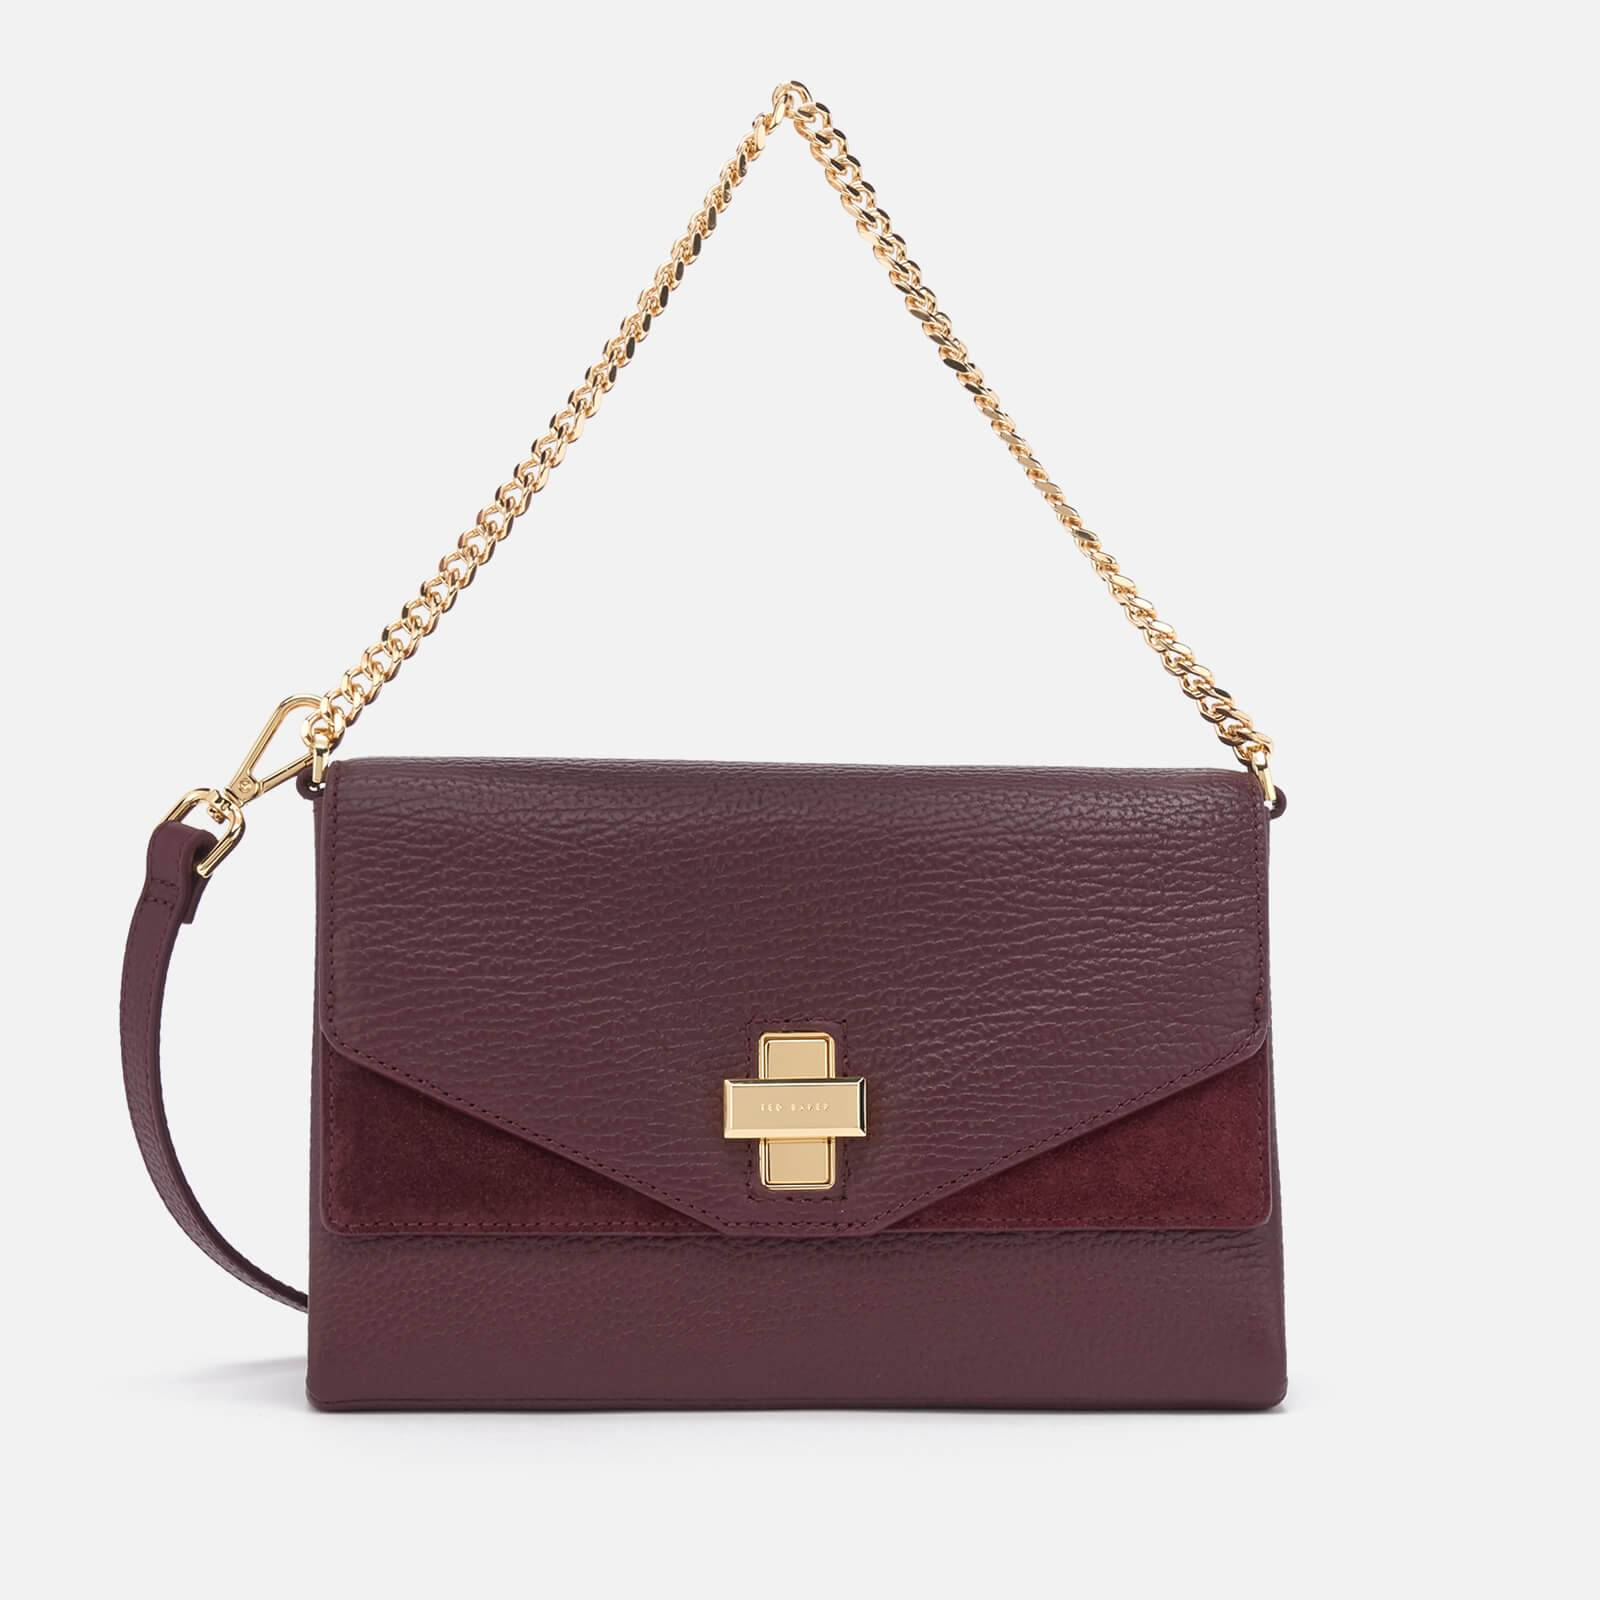 Ted Baker Women's Bethan Flip Clasp Cross Body Bag - Oxblood